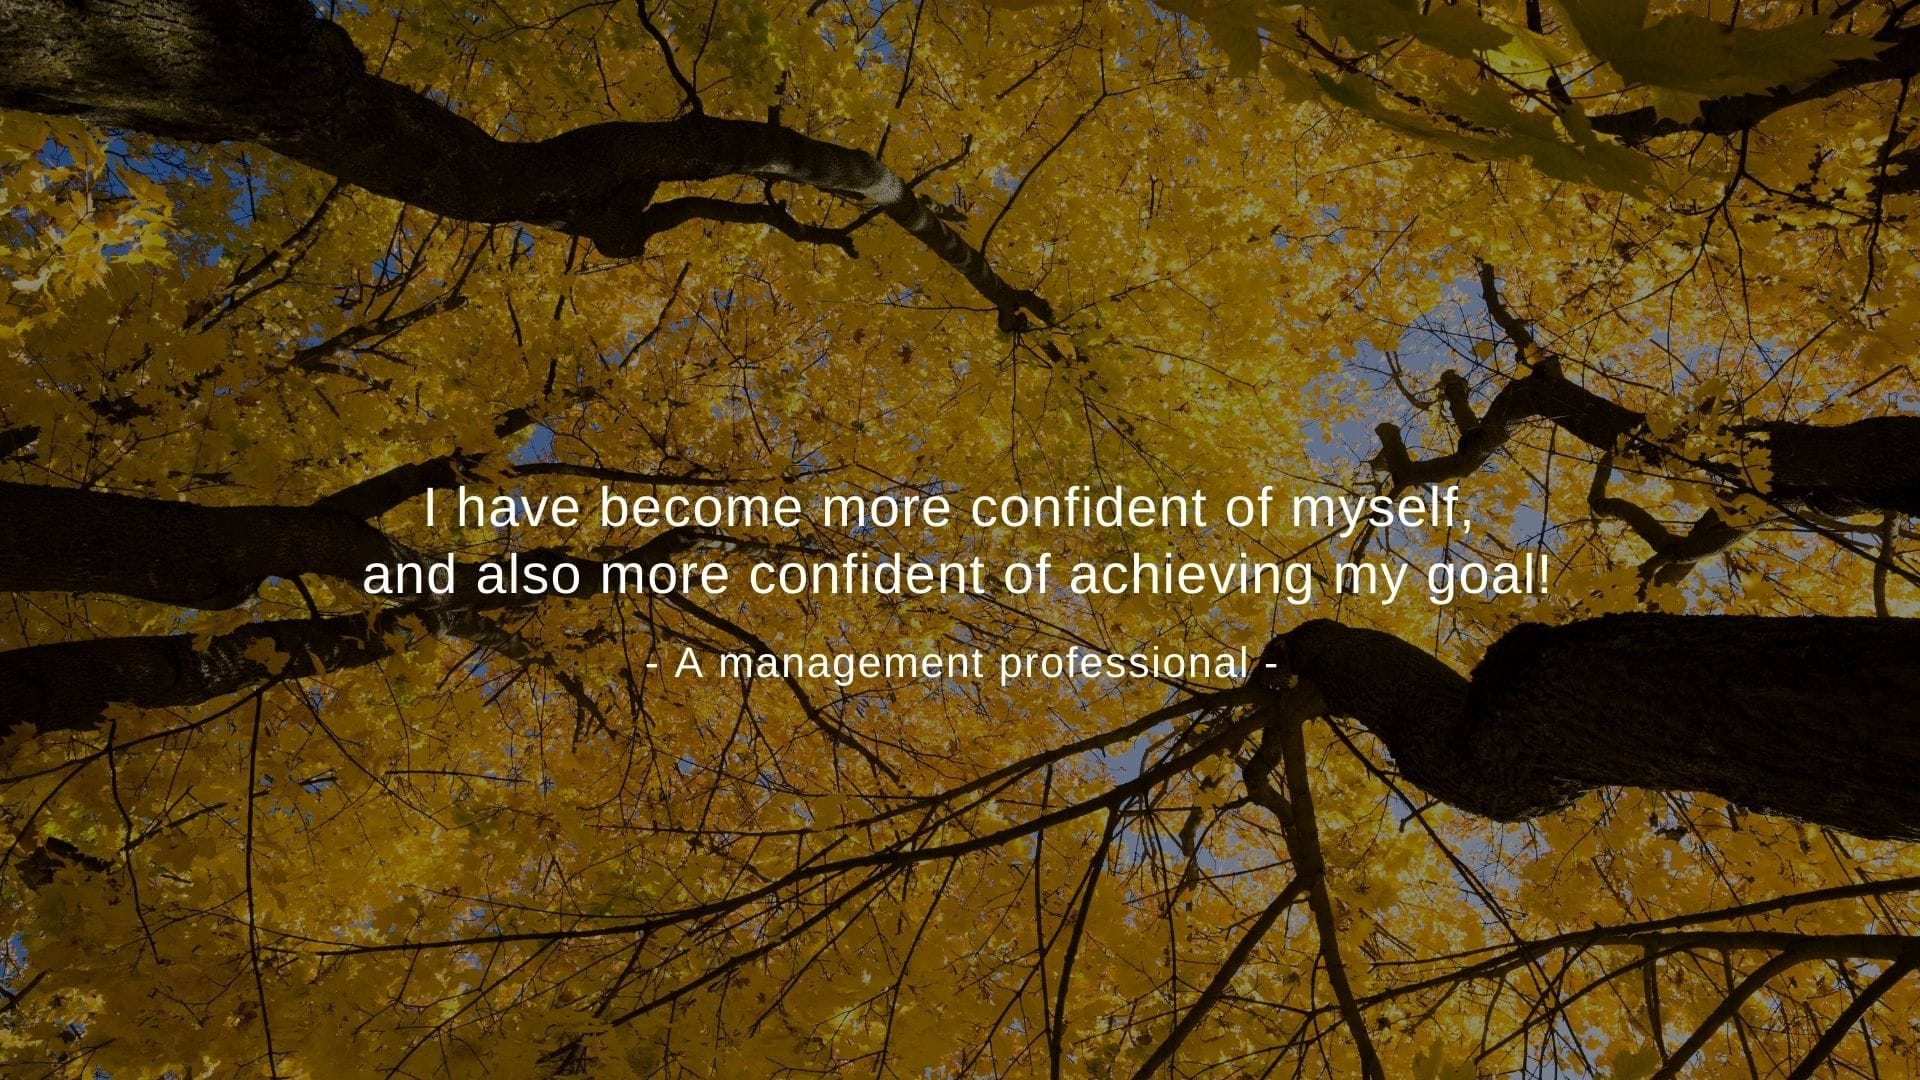 """""""I have become more confident of myself, and also more confident of achieving my goal!"""" A management professional"""